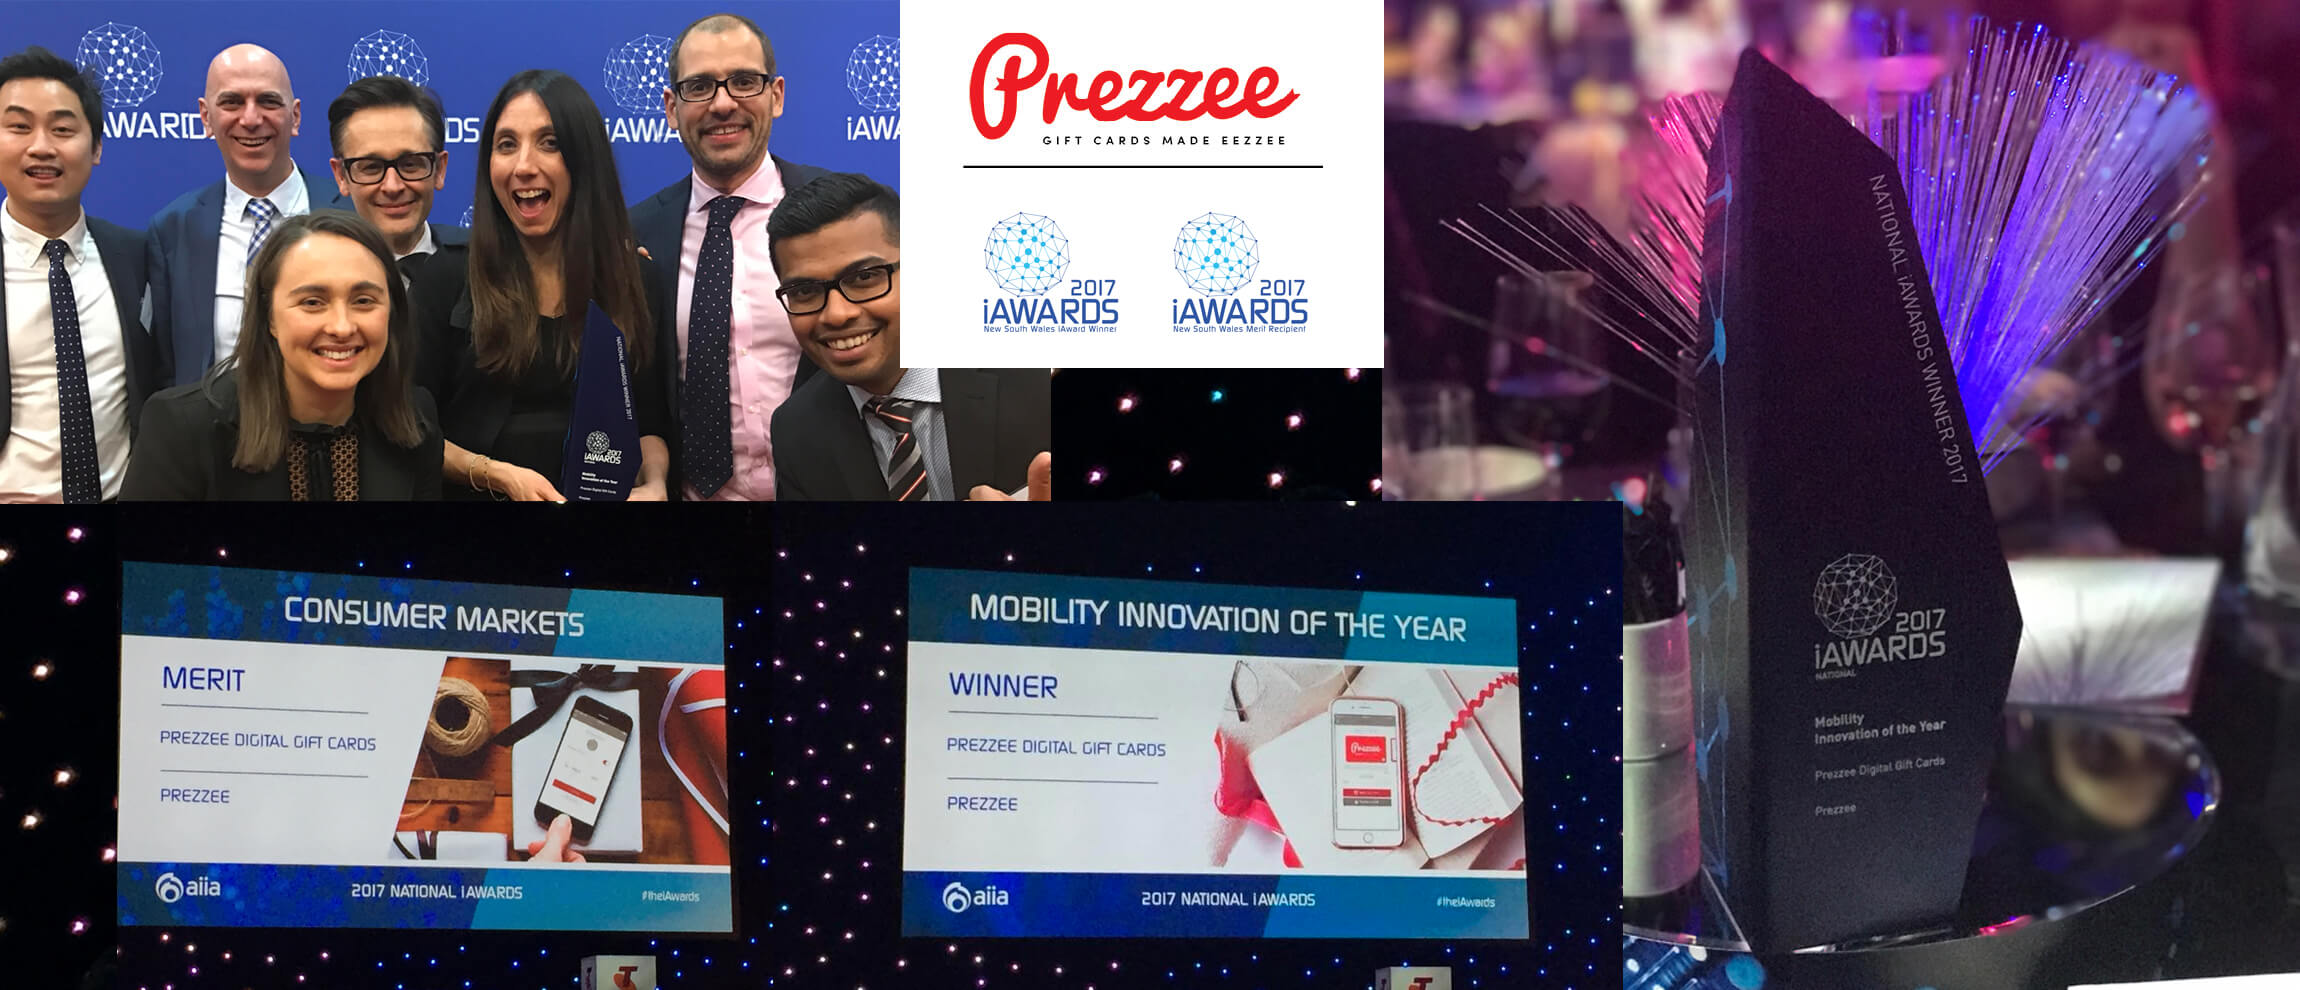 Mobile Innovation of the Year!